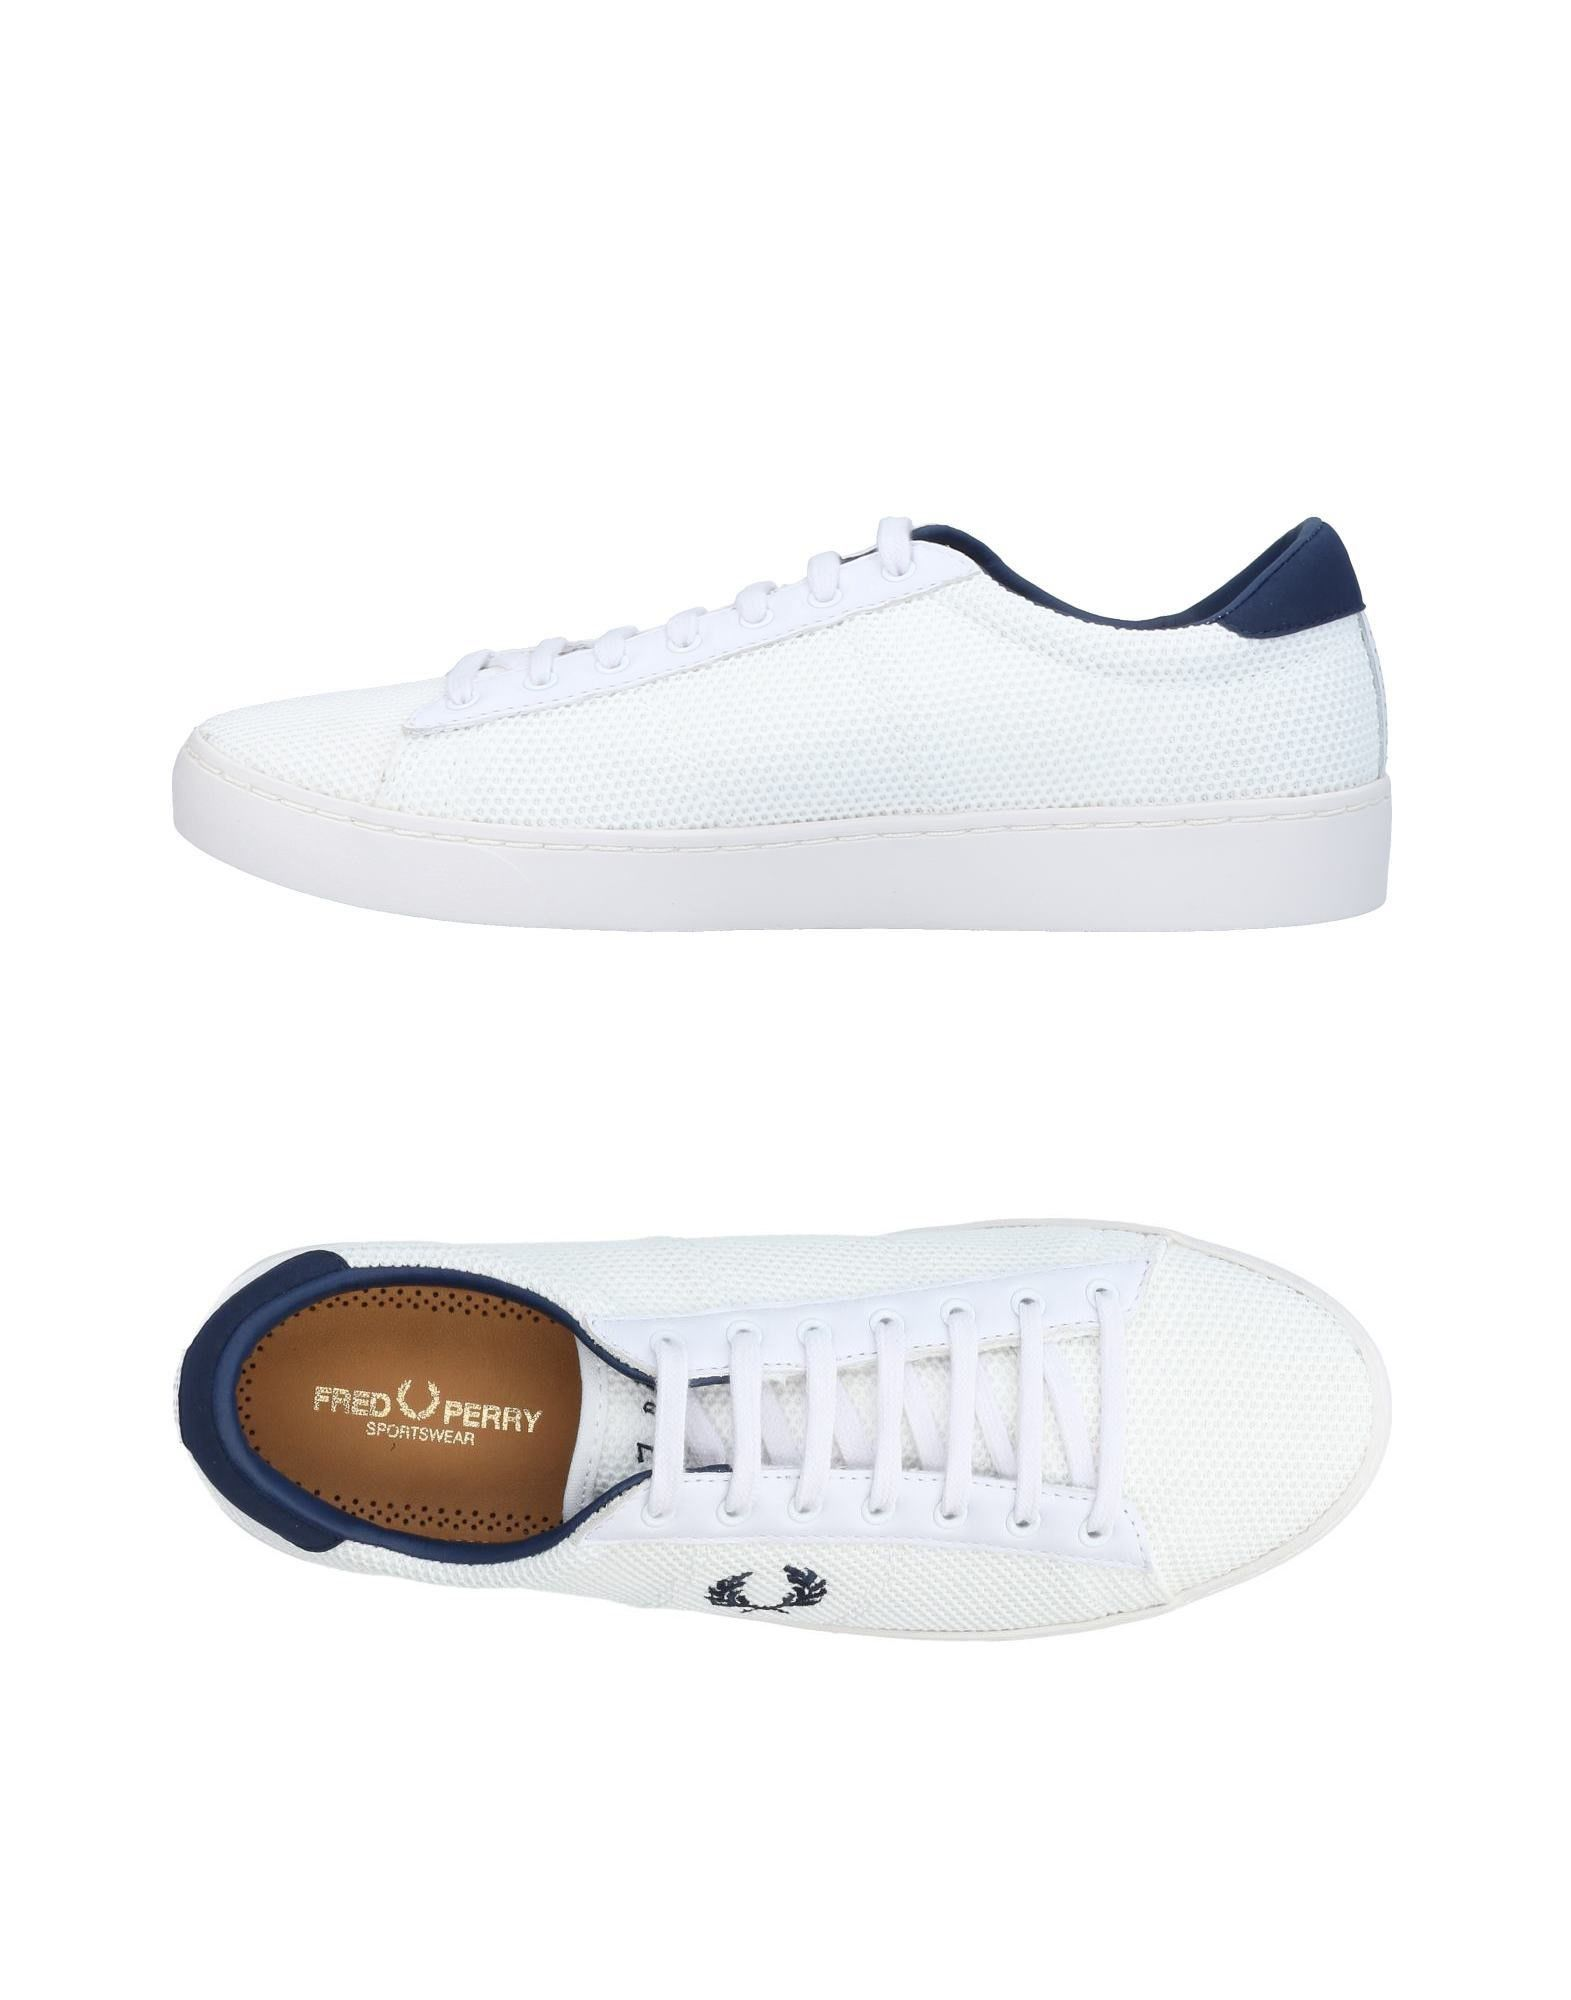 Sneakers Fred Perry Homme - Sneakers Fred Perry  Blanc Remise de marque